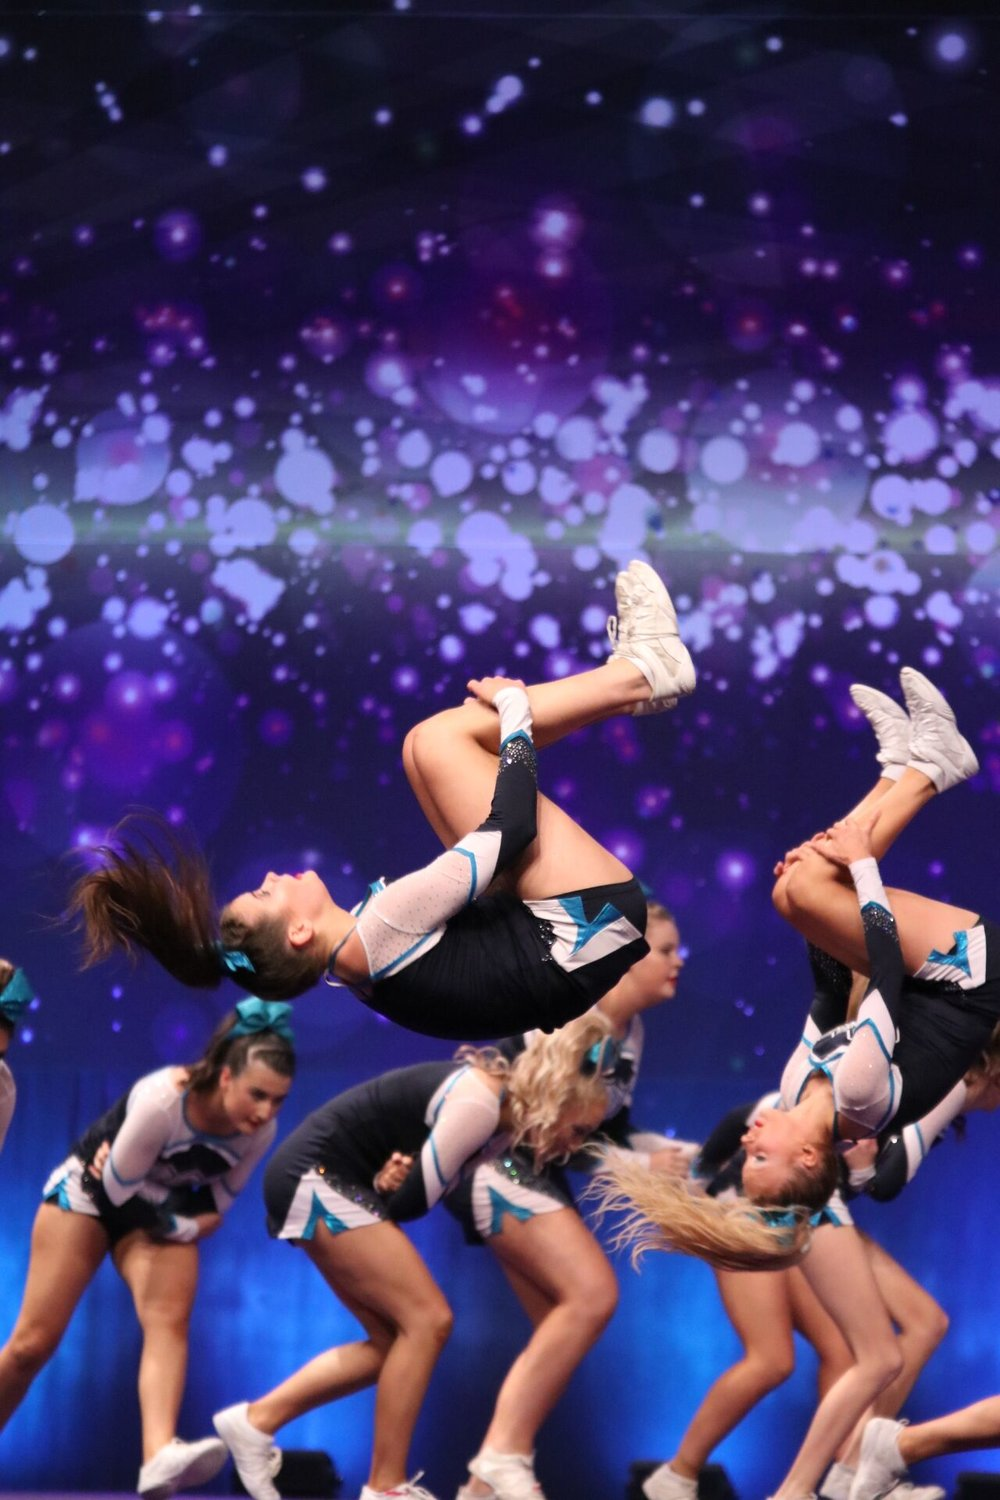 Tumble - Most people are more familiar with the tumbling side of cheer, as it is heavily based in gymnastics. Tumbling refers to the flips, rolls and cartwheels you would see in a cheerleading routine, similar to the floor skills in gymnastics.